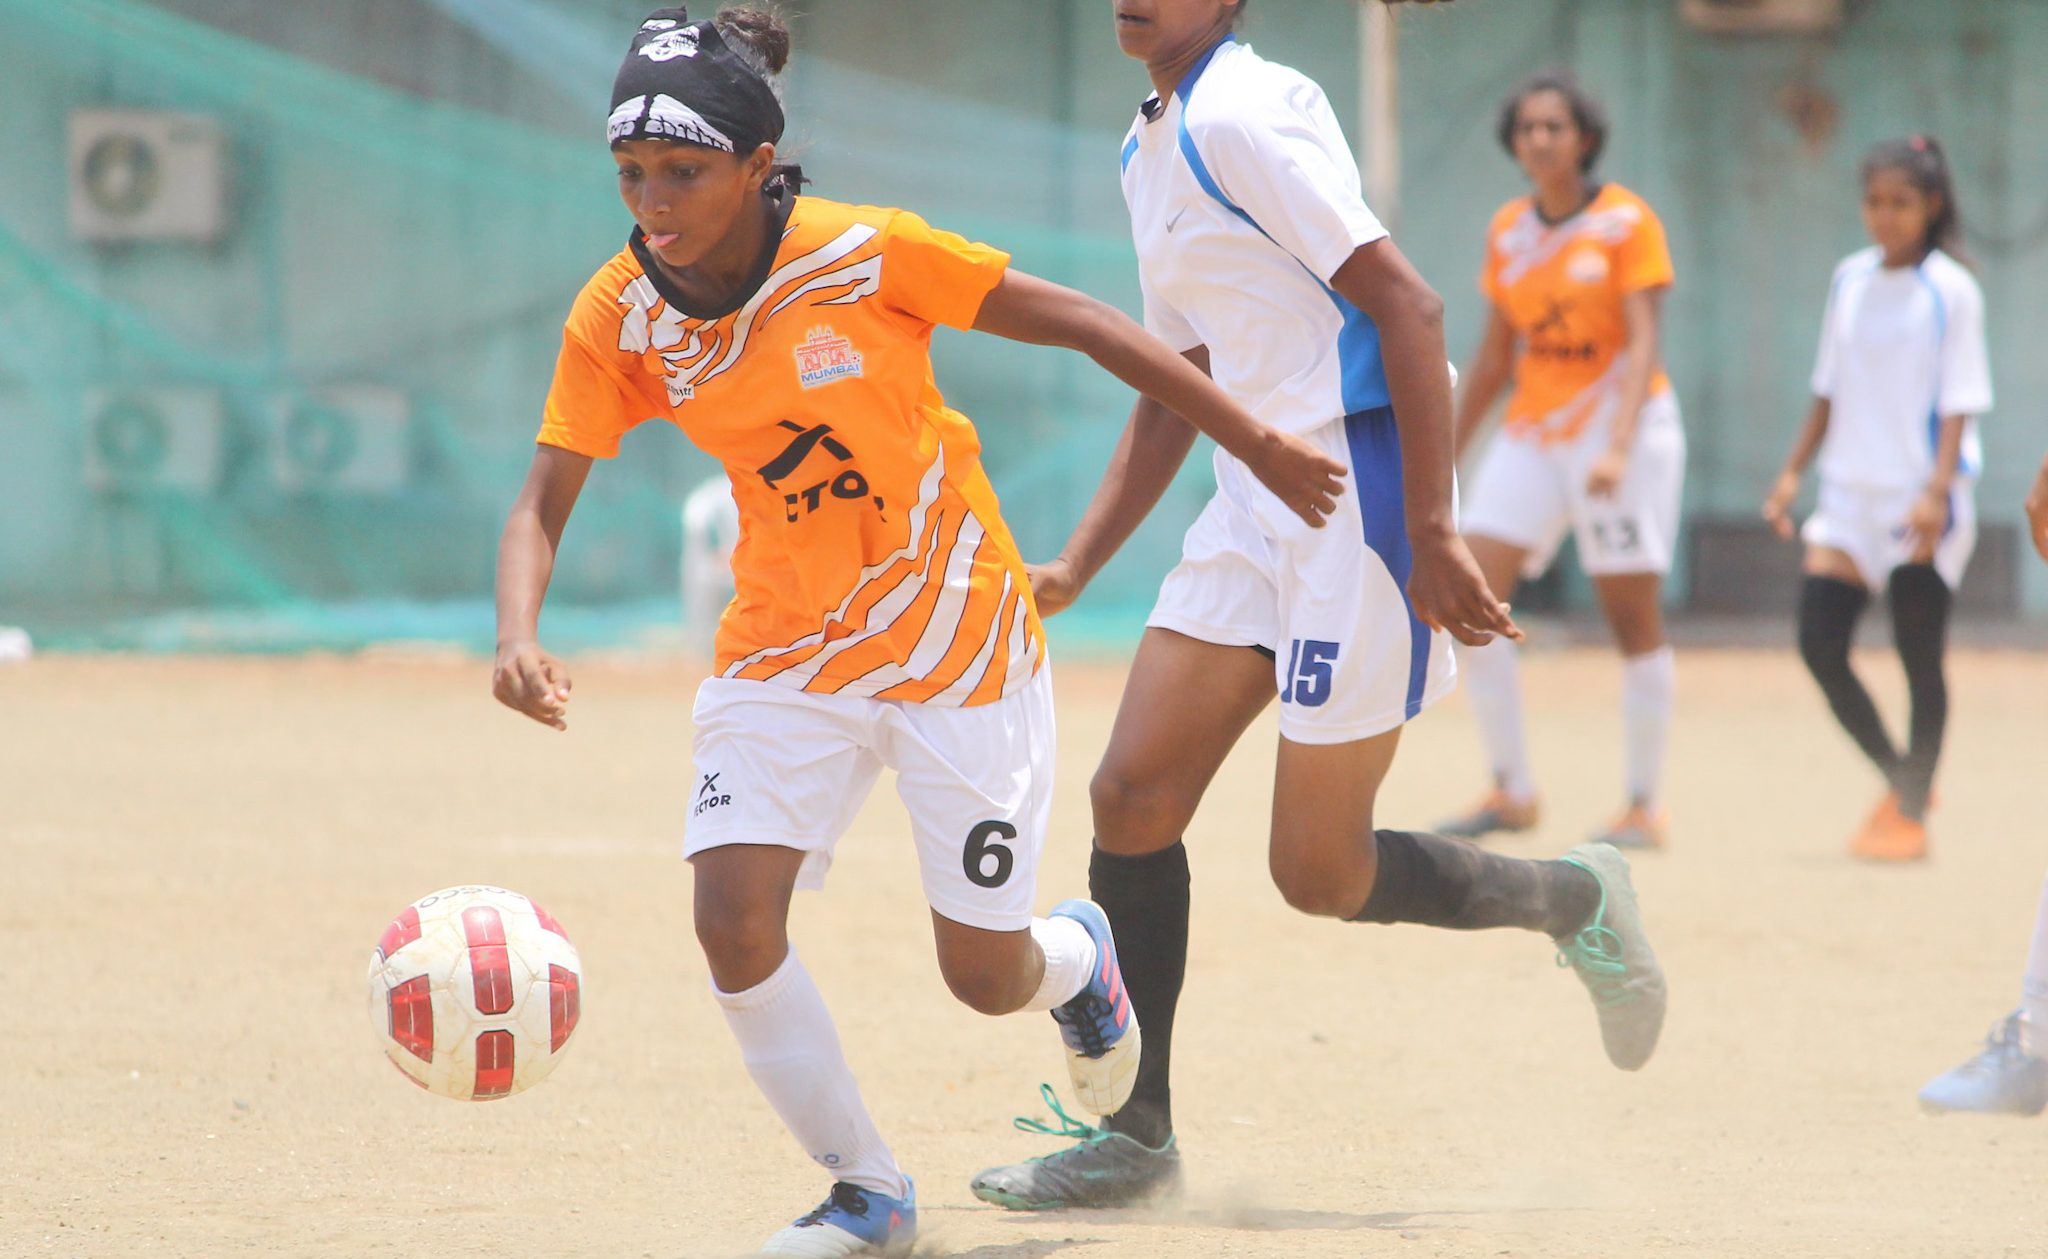 WIFA Women's Inter District Football Tournament. Mumbai and defending Champions Nagpur knocked out of tournament.